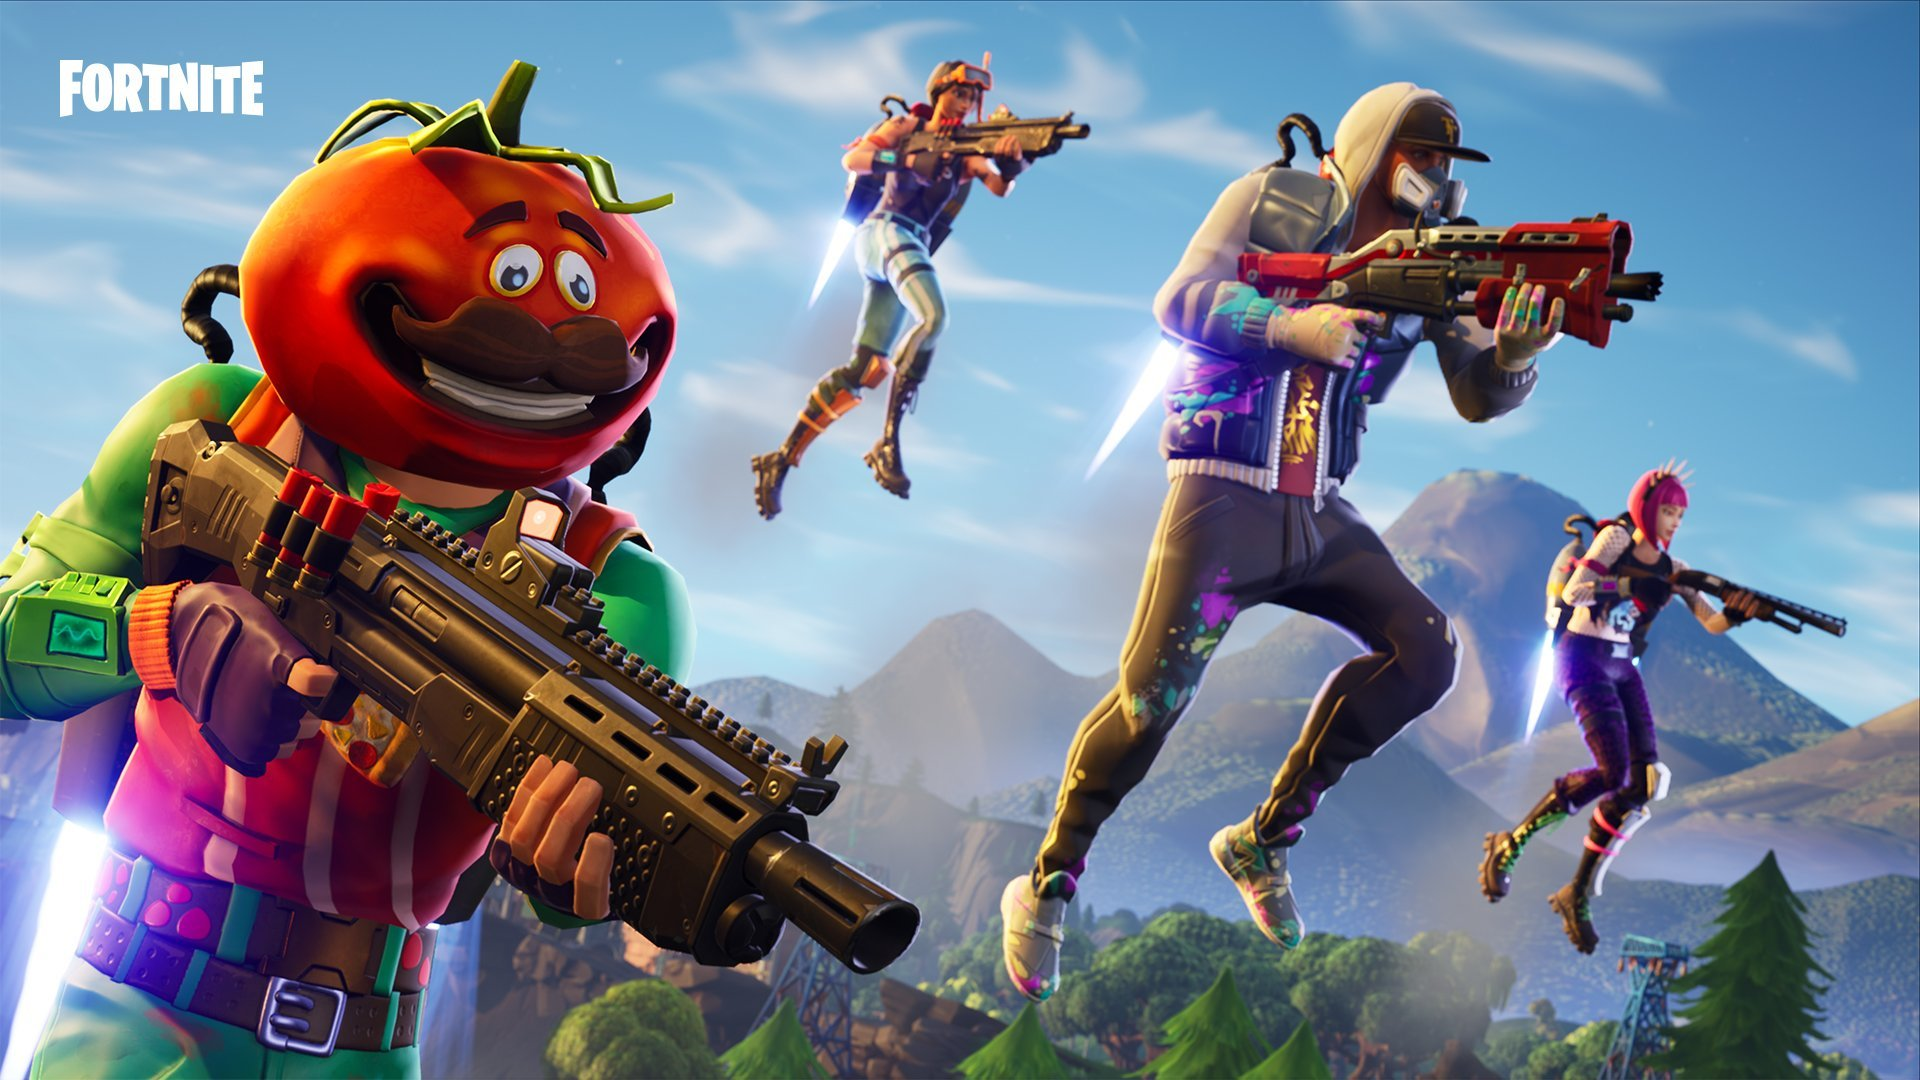 PlayStation cross-play is coming, starting with Fortnite — Sony caves